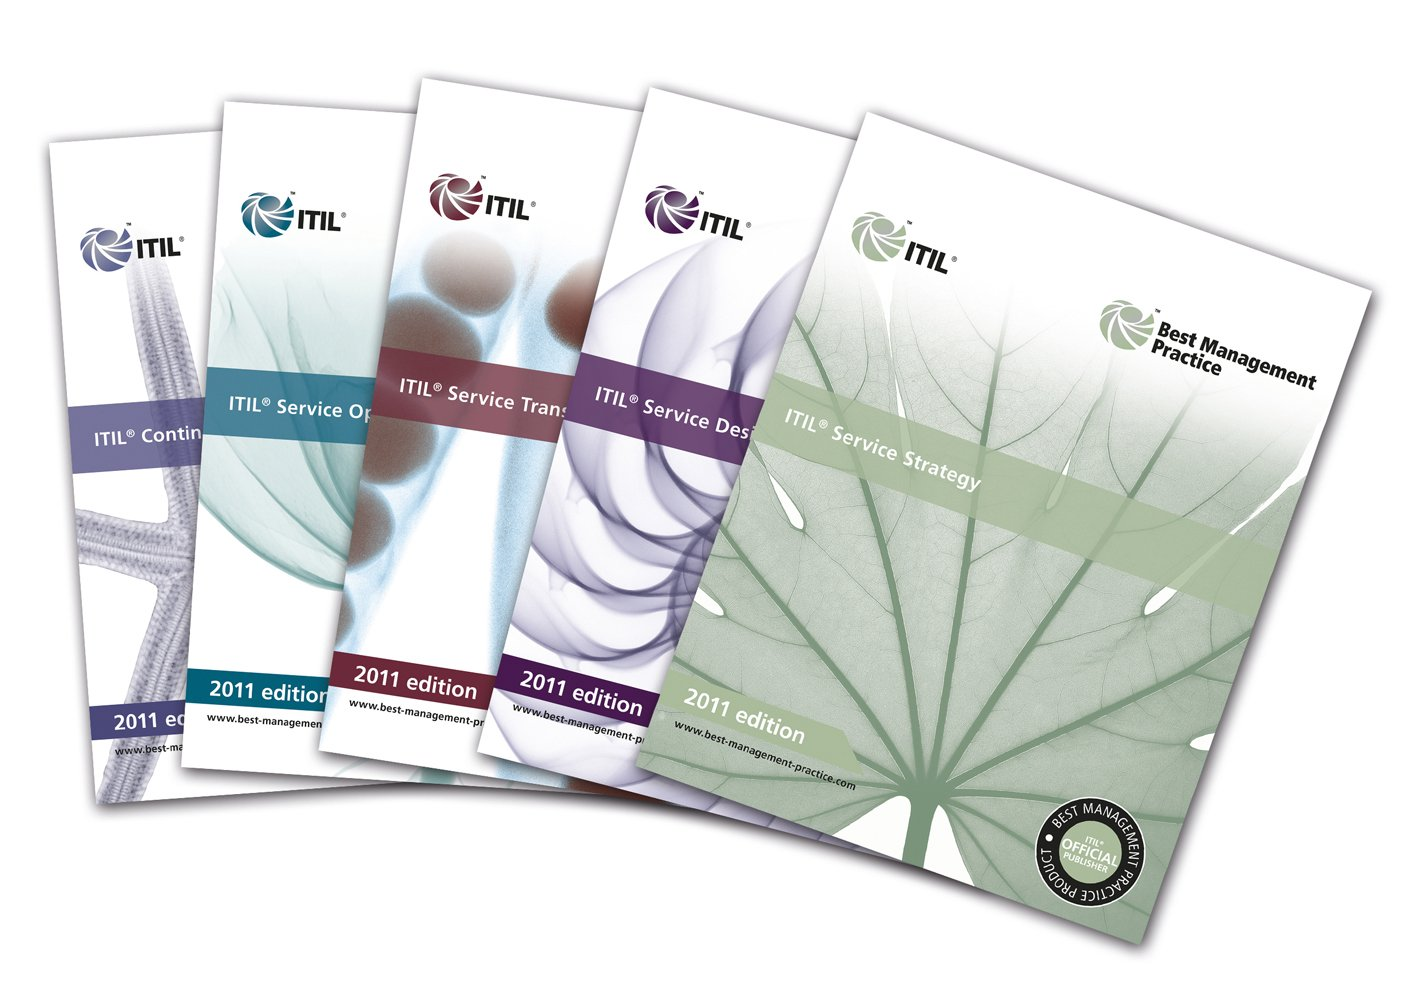 ITIL Publication Suite 2011